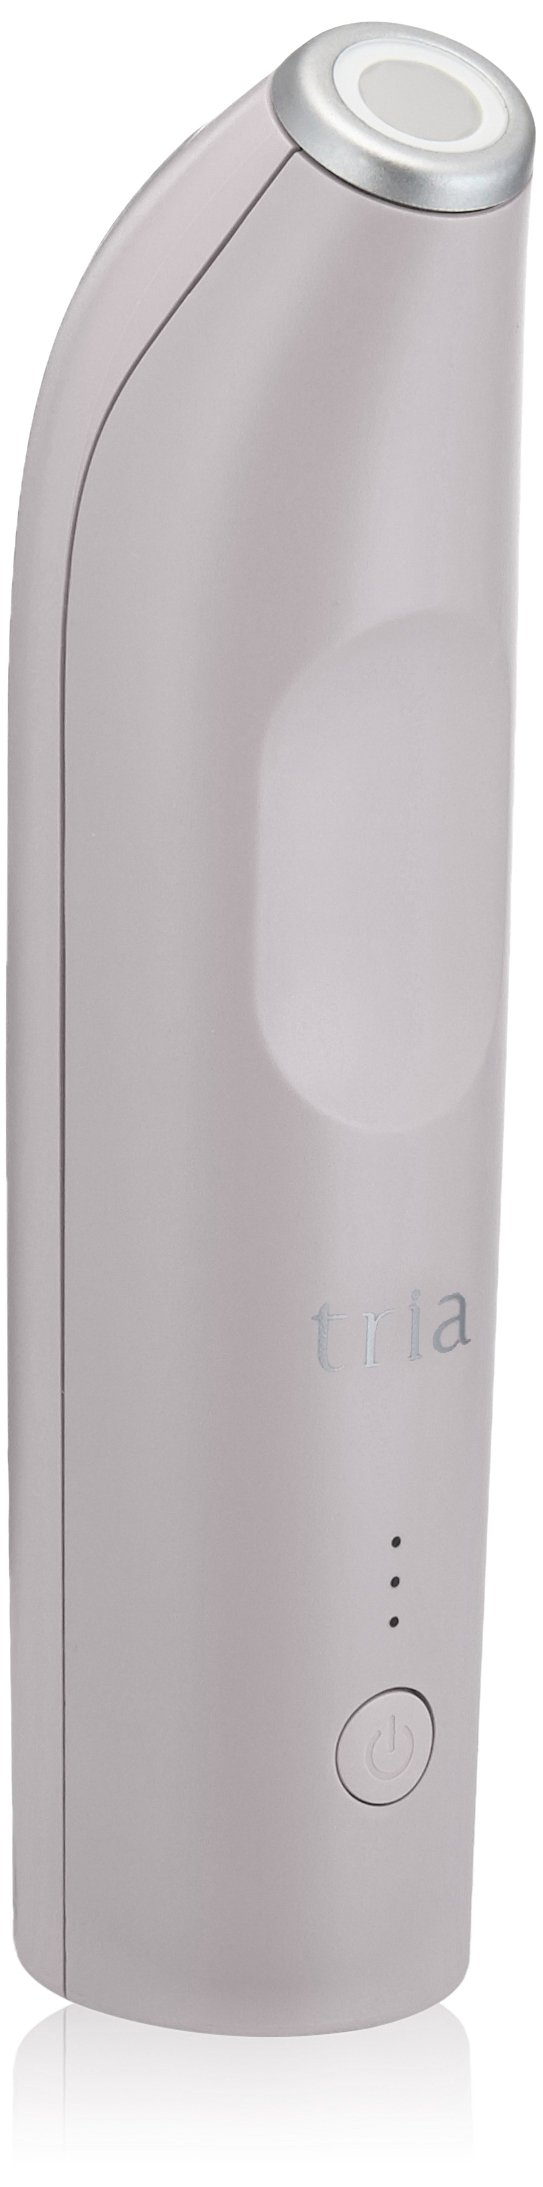 Tria Beauty Hair Removal Laser Precision